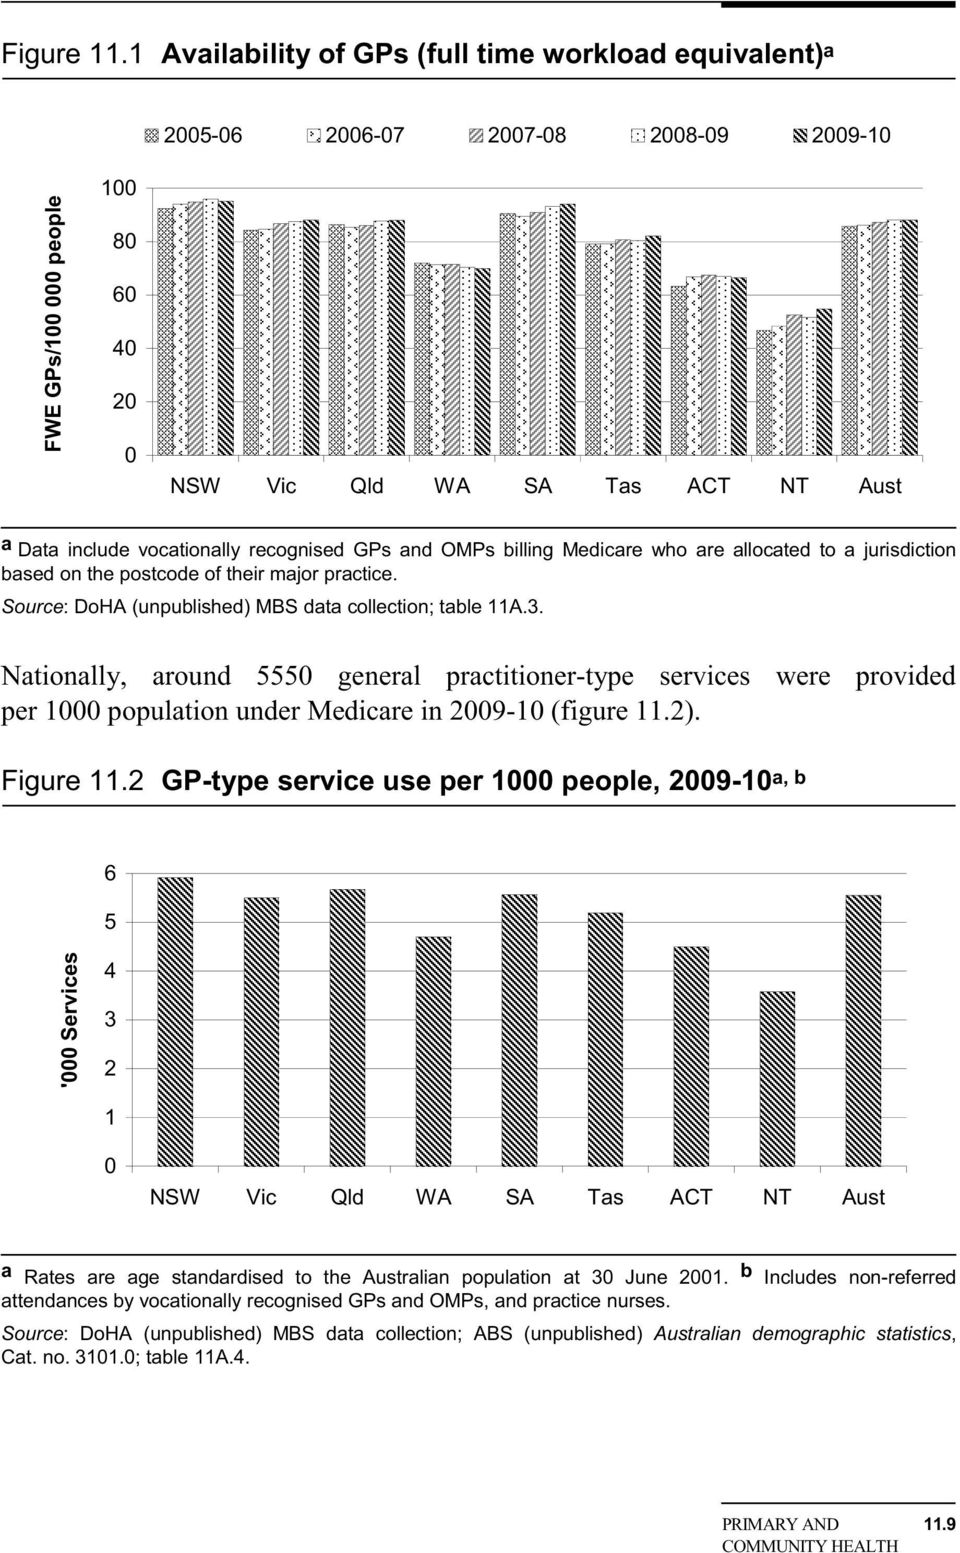 recognised GPs and OMPs billing Medicare who are allocated to a jurisdiction based on the postcode of their major practice. Source: DoHA (unpublished) MBS data collection; table 11A.3.